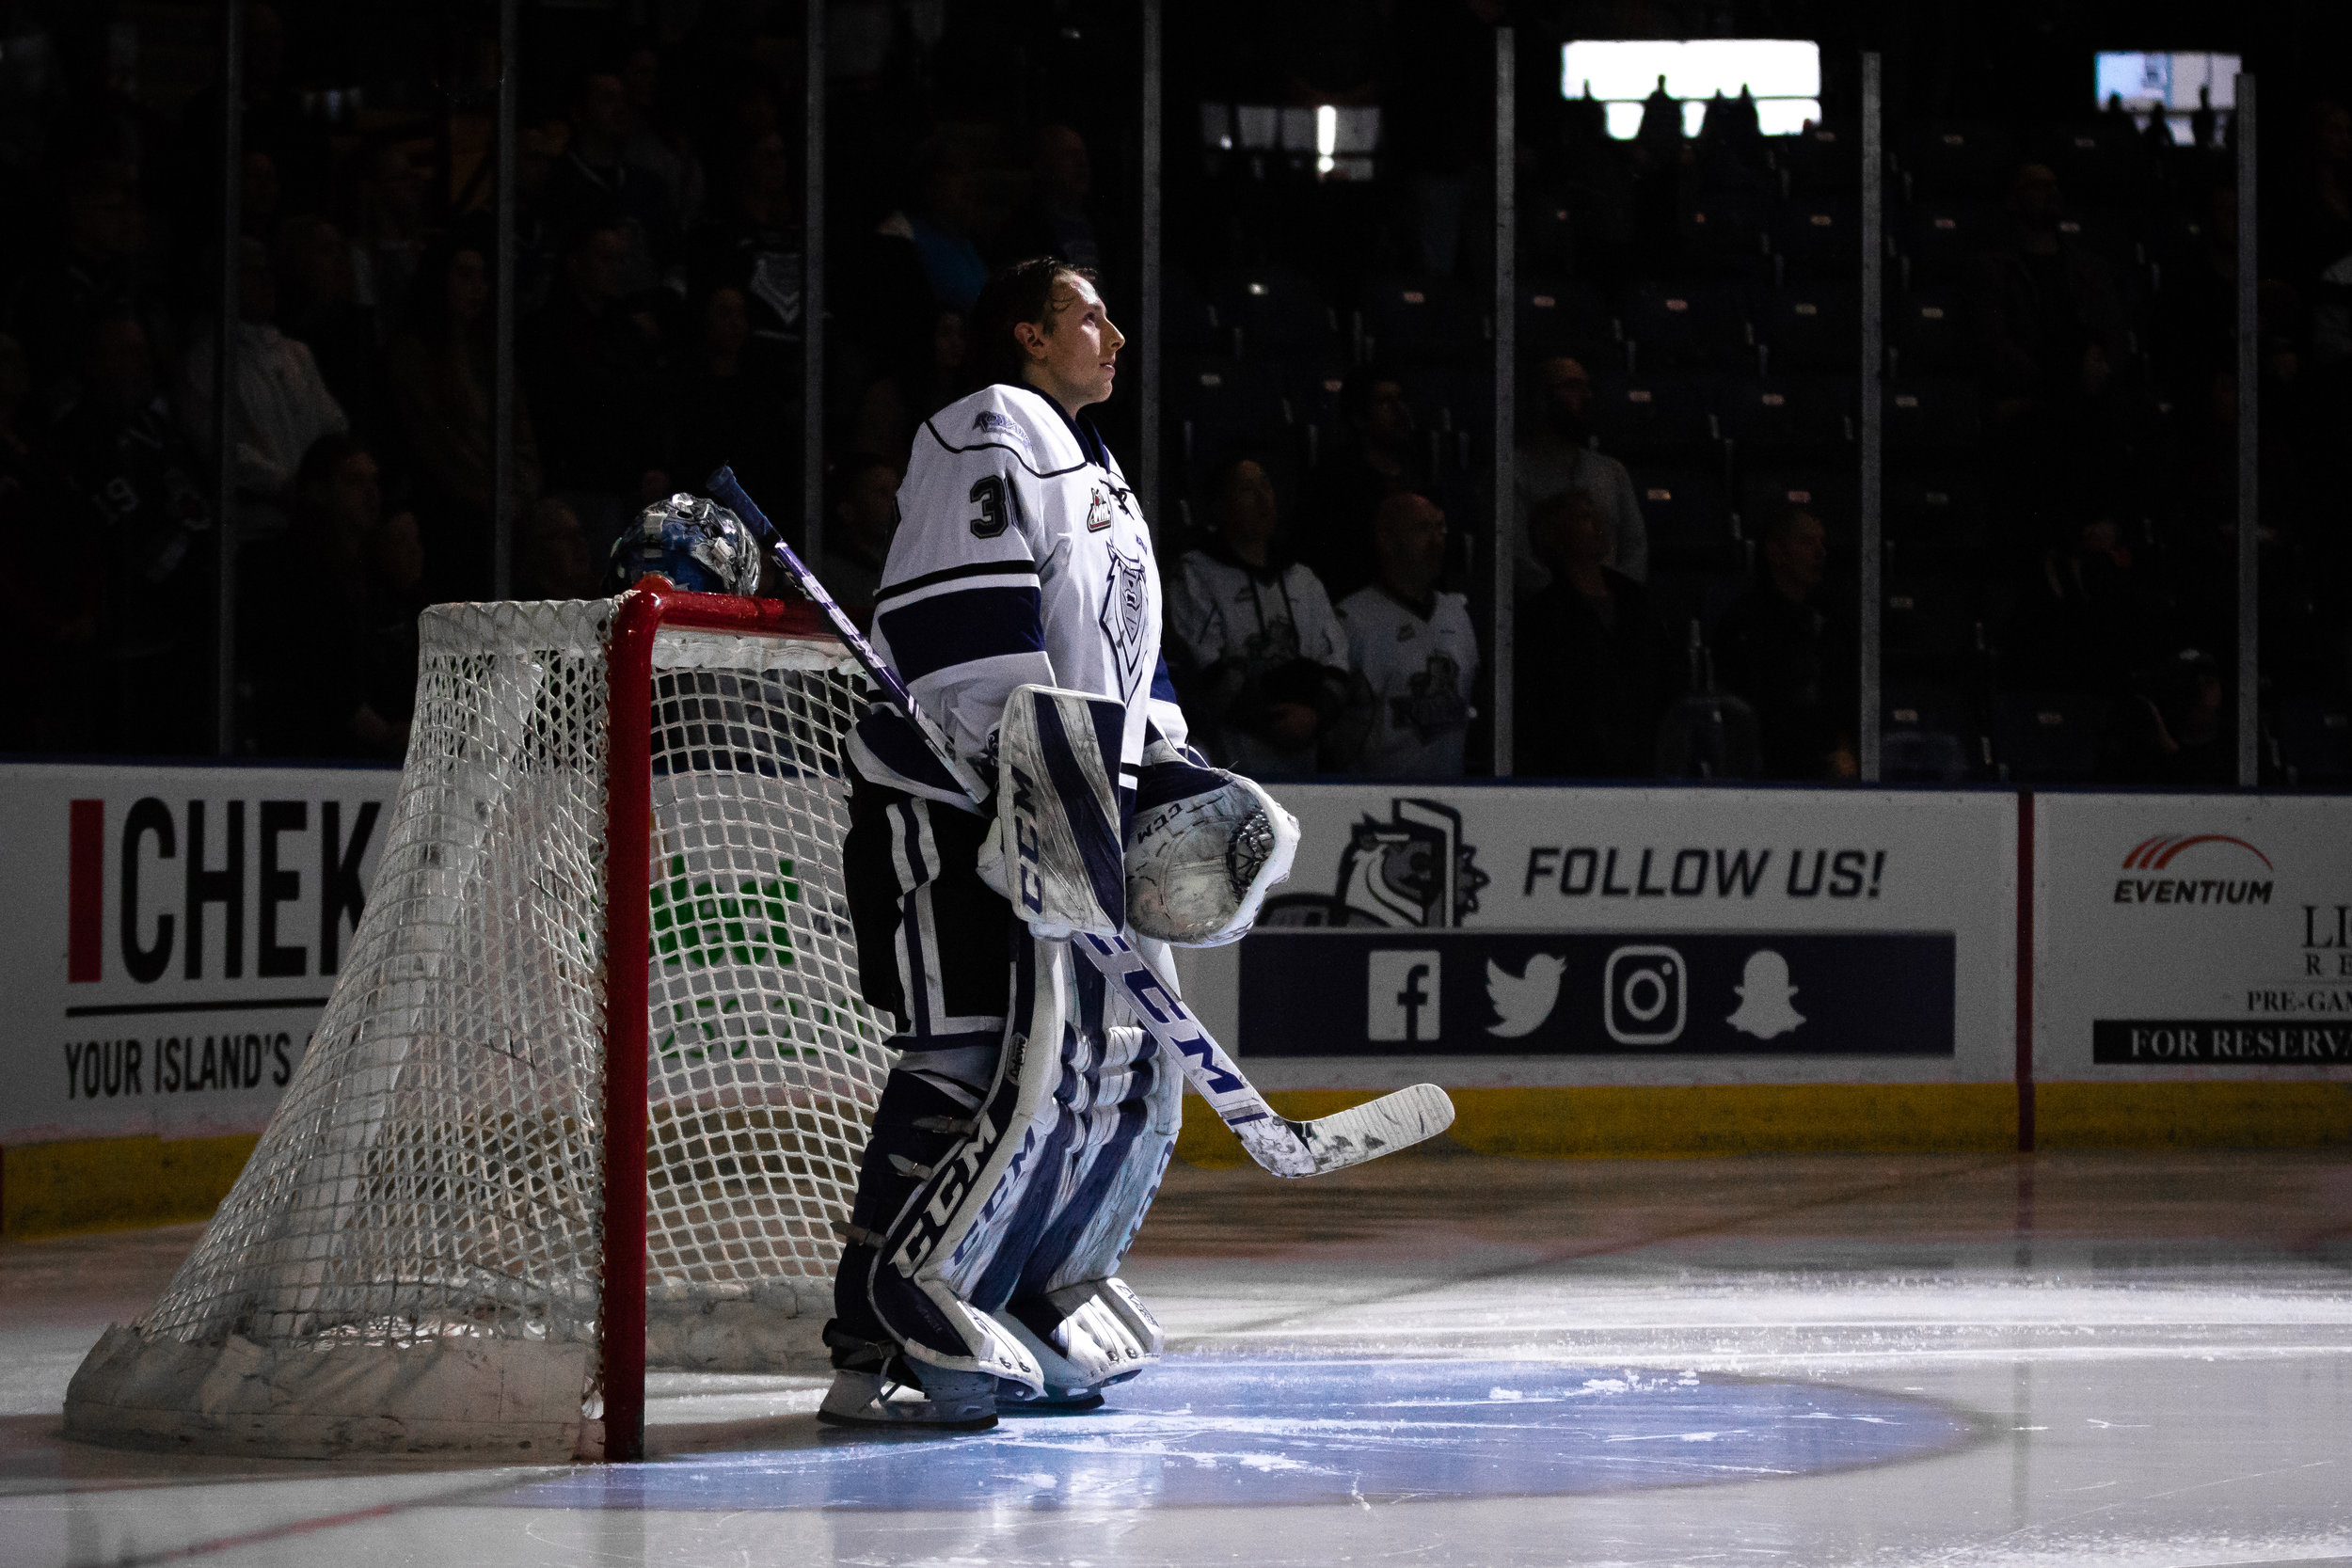 #30 Griffen Outhouse - Game 2 - WHL Playoffs 2019 Victoria Royals VS Kamloops Blazers - March 23 2019 (4-3 Loss). Photo by Jay Wallace -20145.jpg